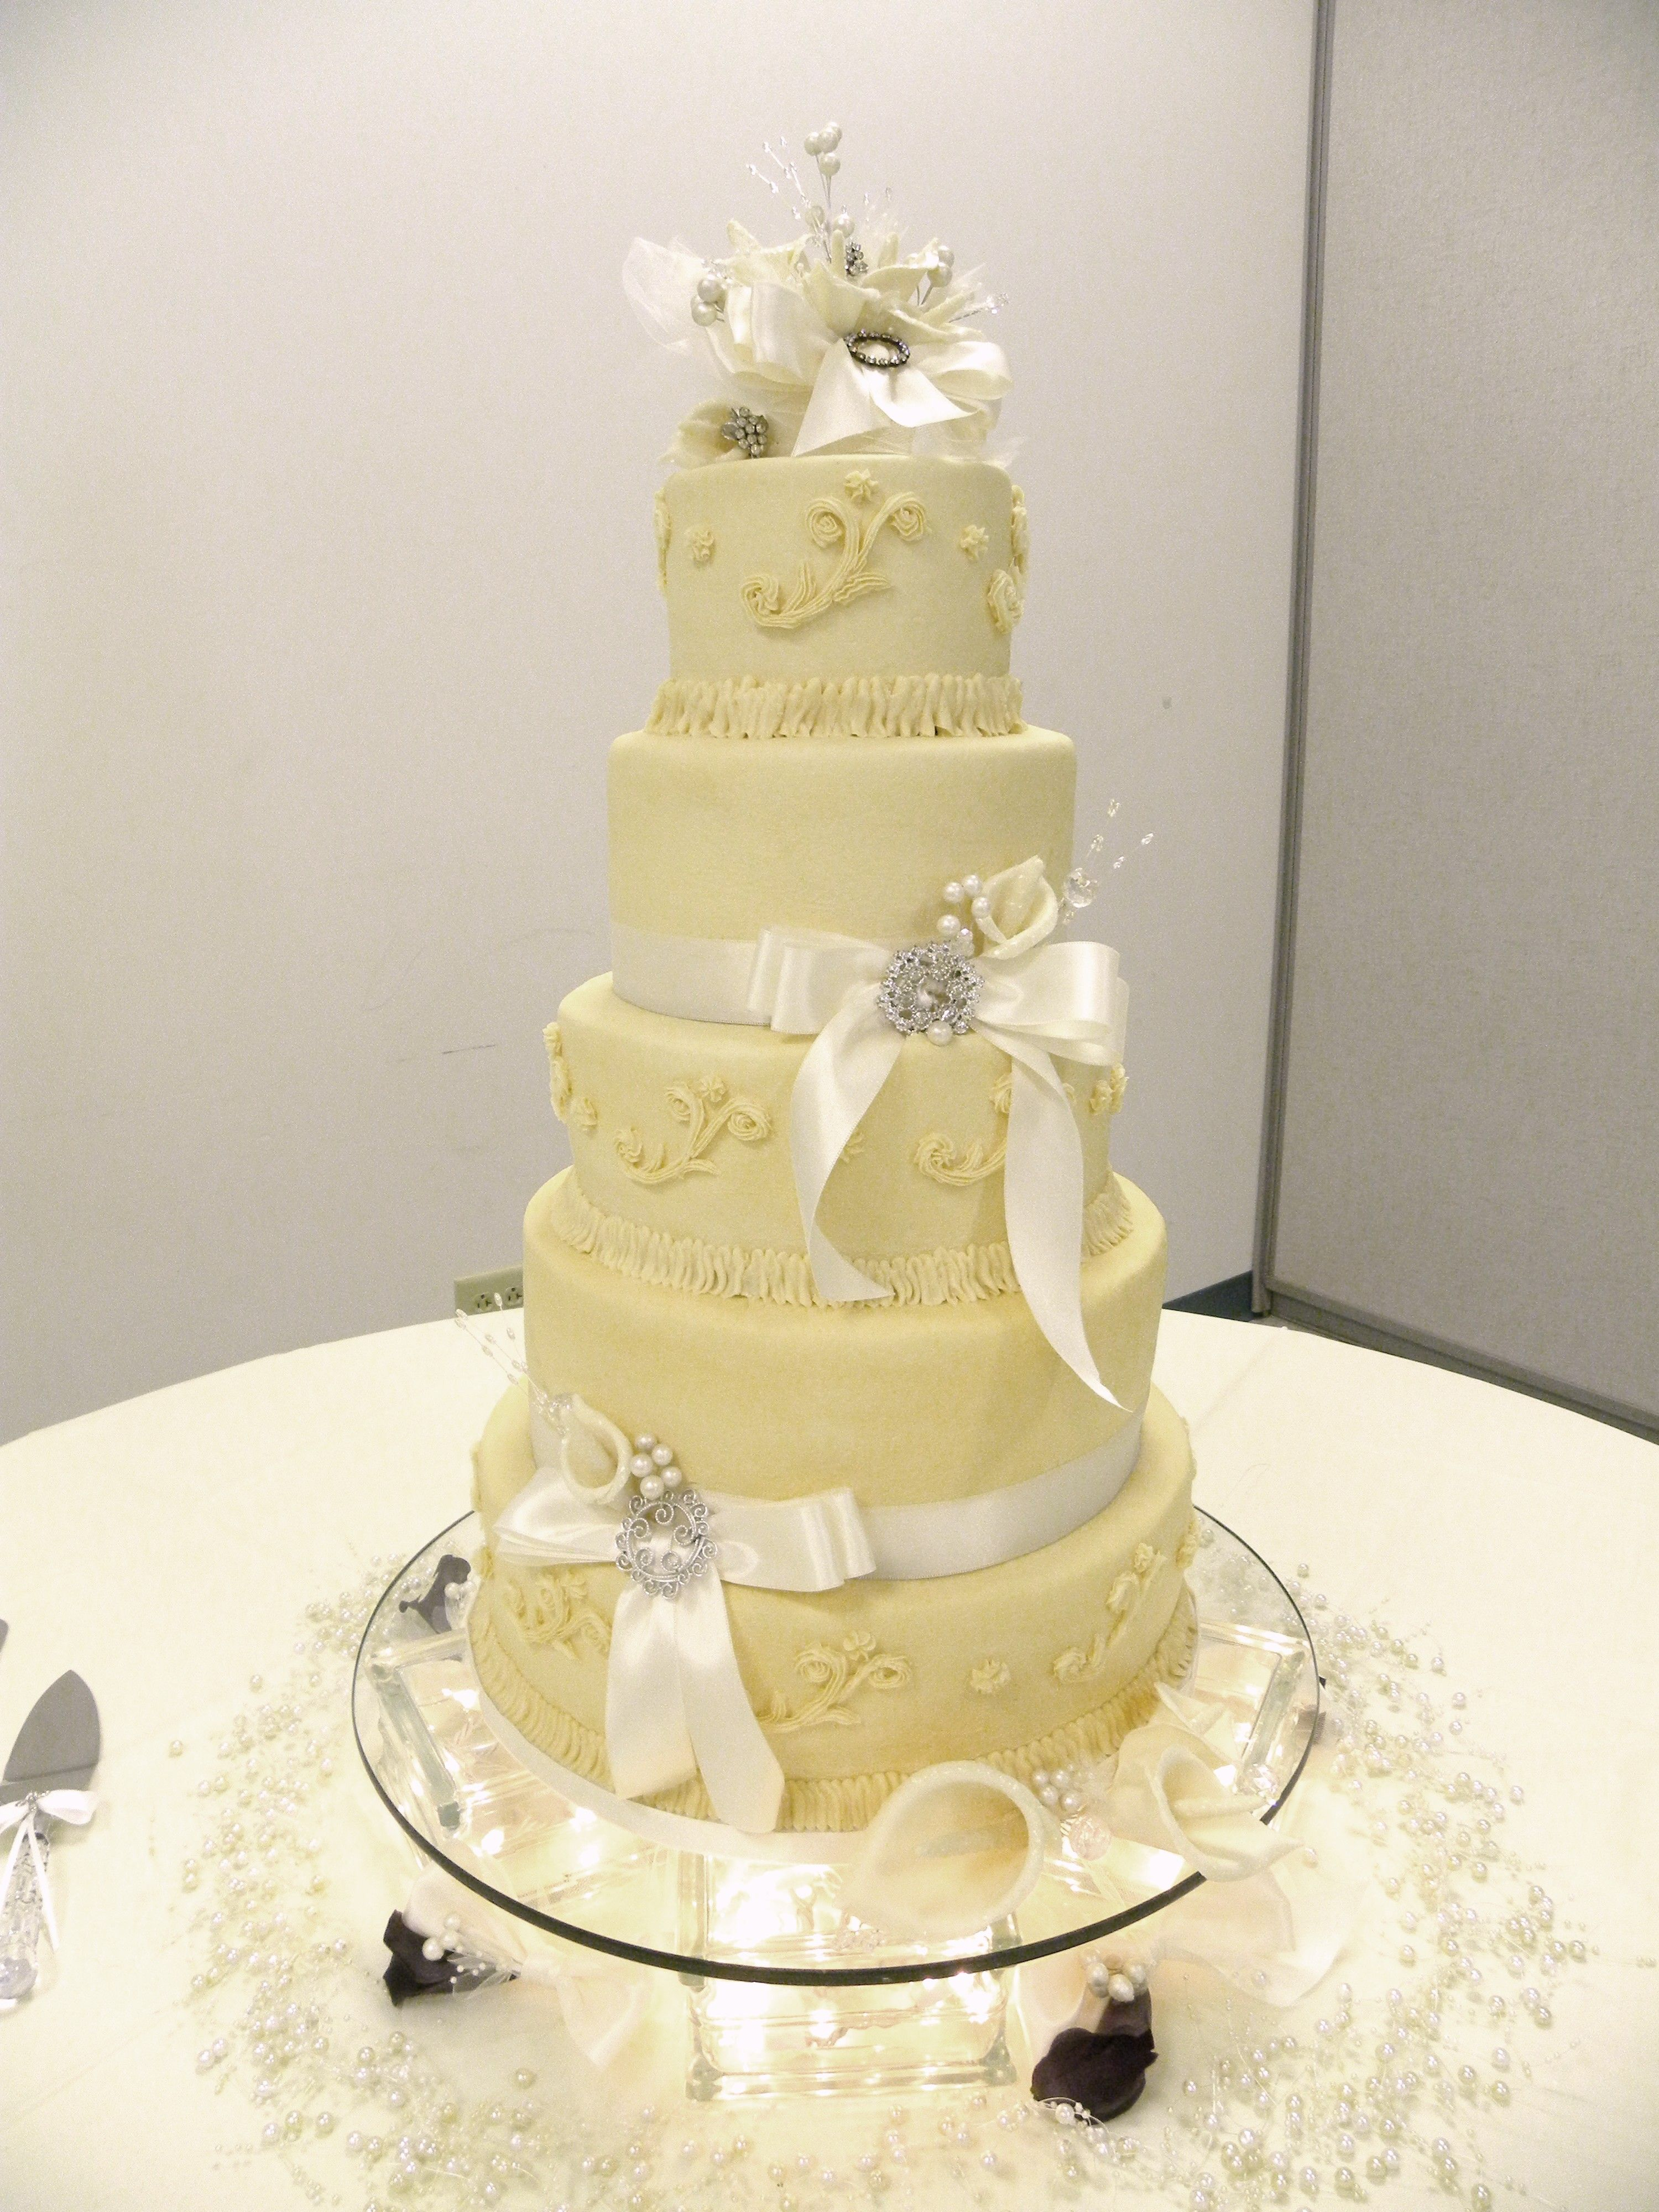 5 Tier Ivory Butter Cream Frosting Wedding Cake With Gum